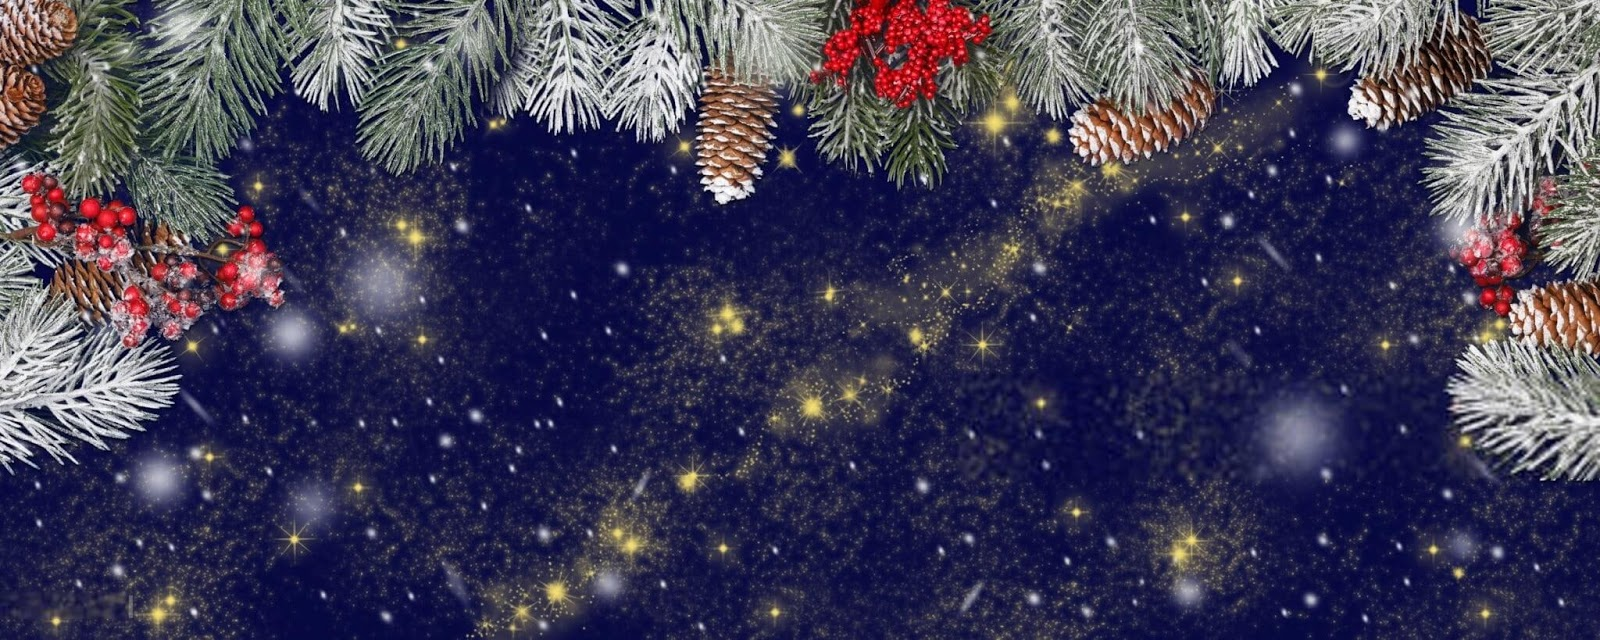 Christmas Background Pictures in HD